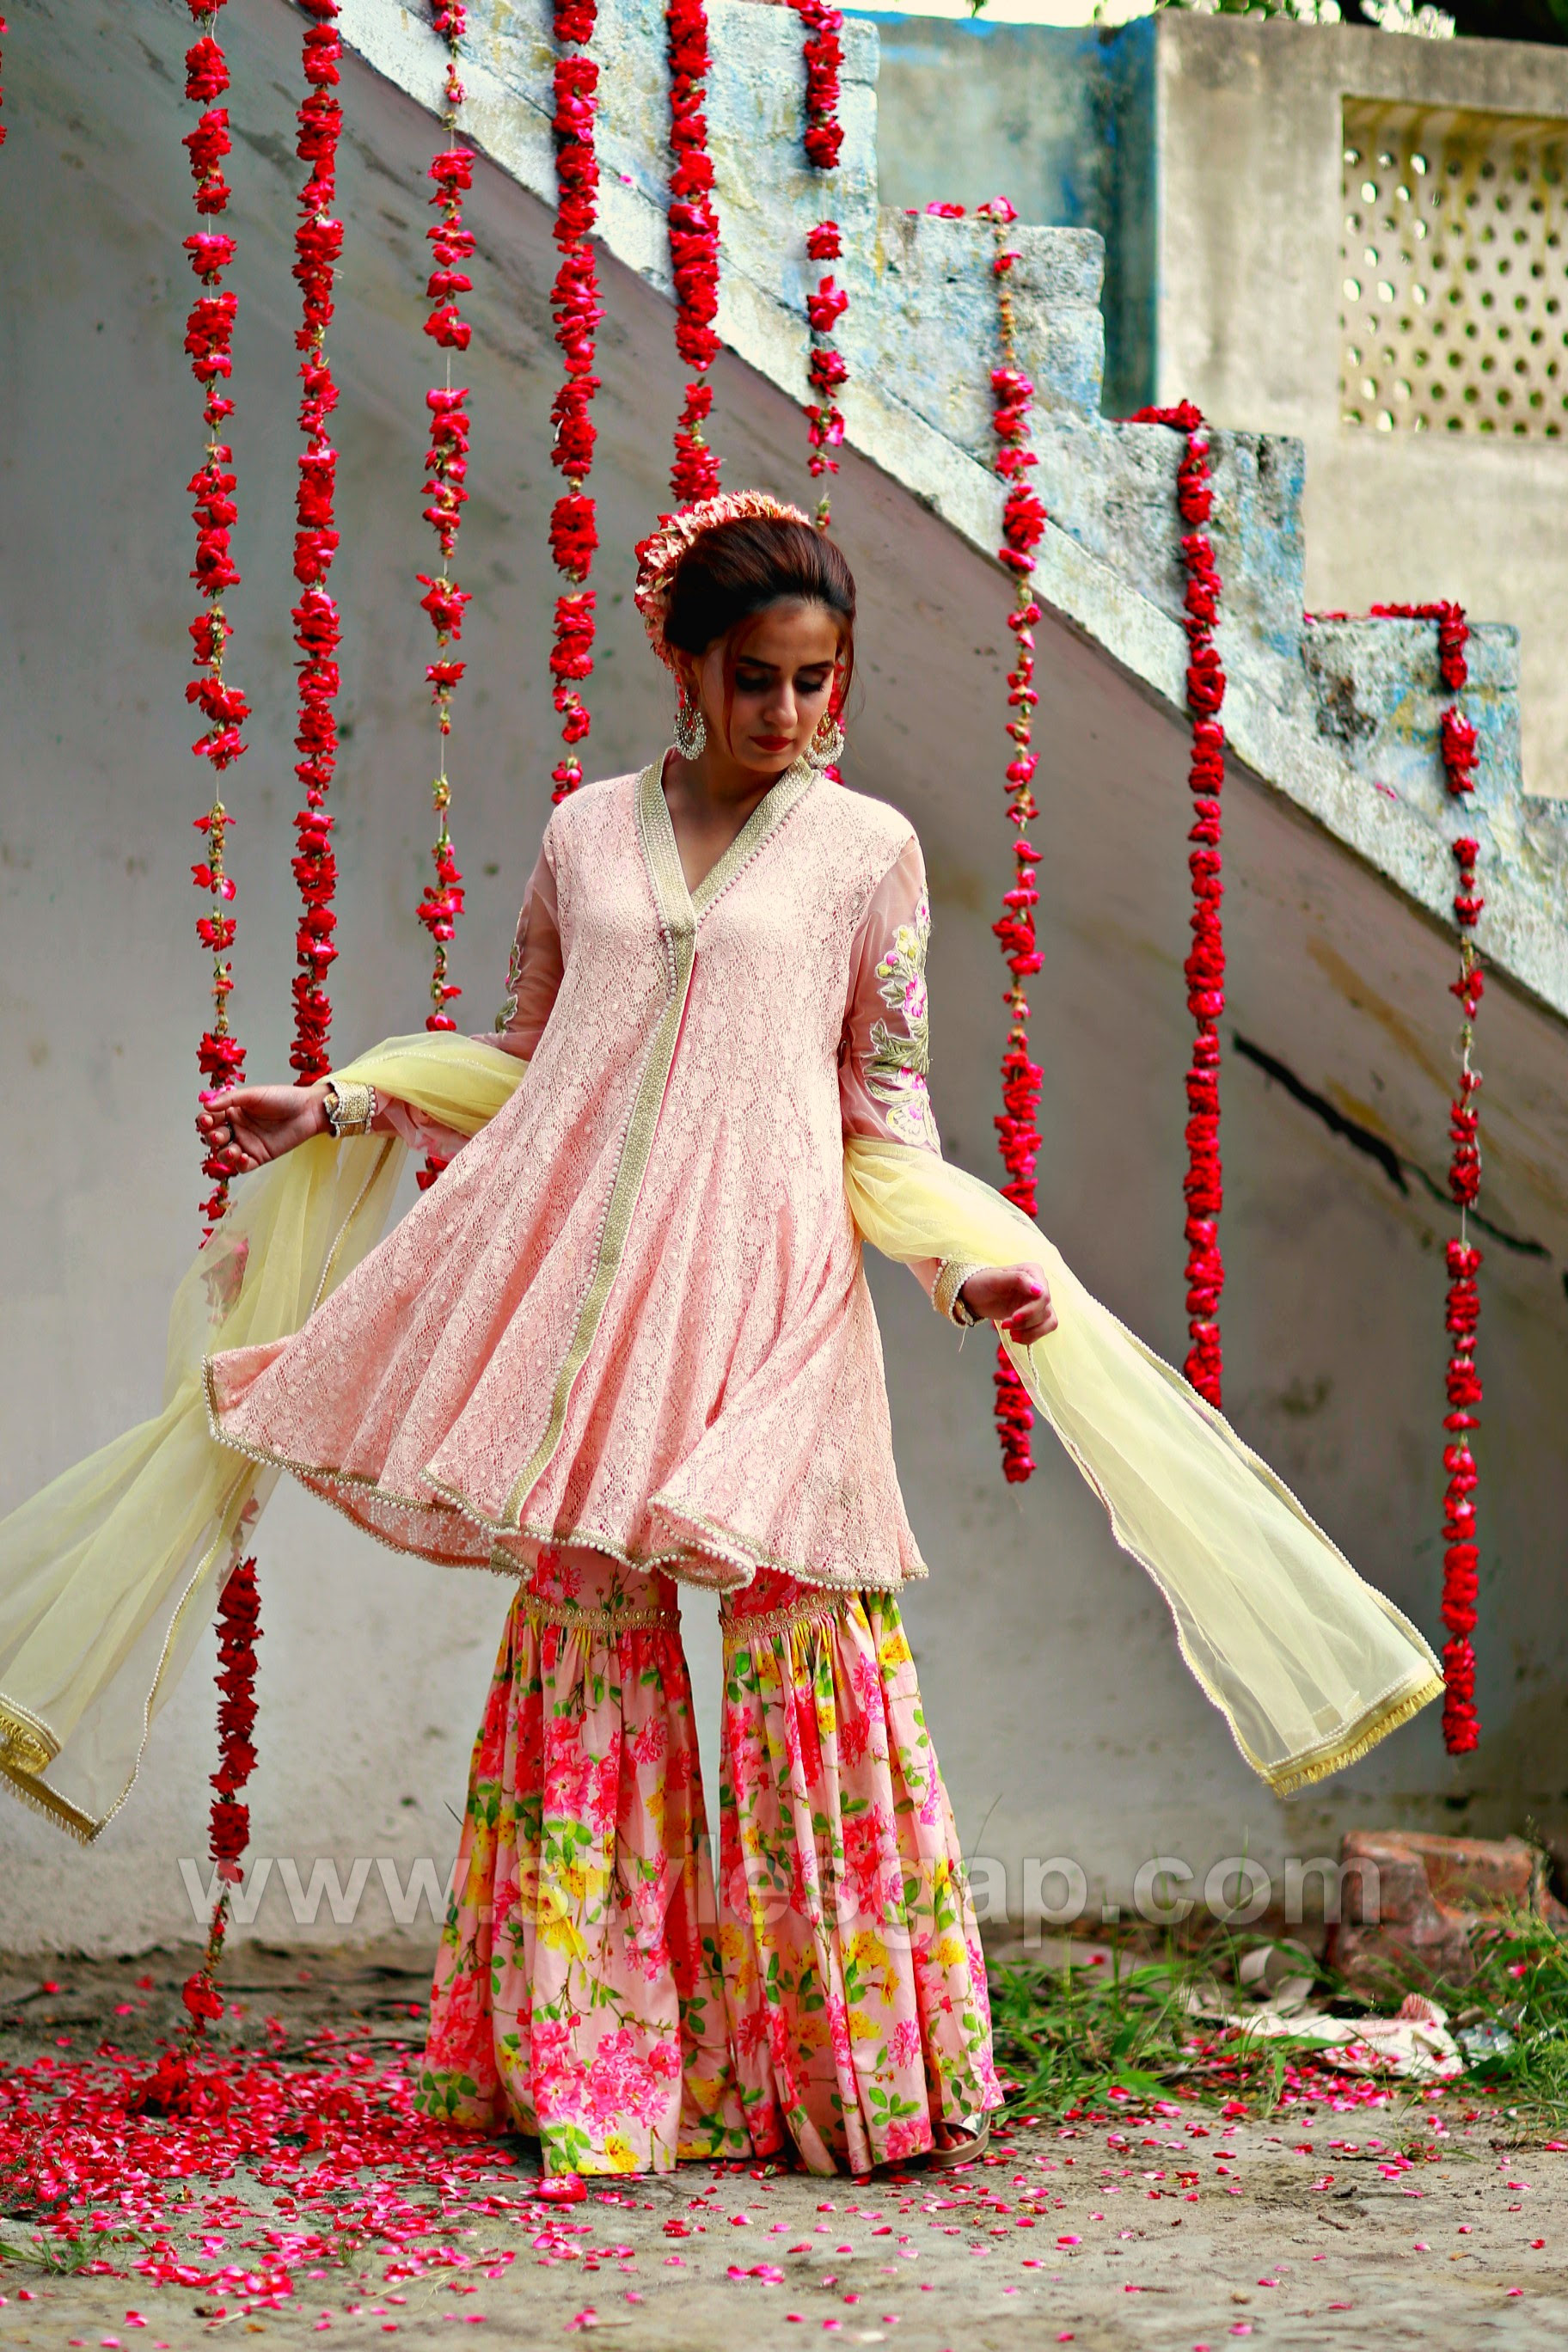 12 must have simple stylish eid dresses trends 20182019